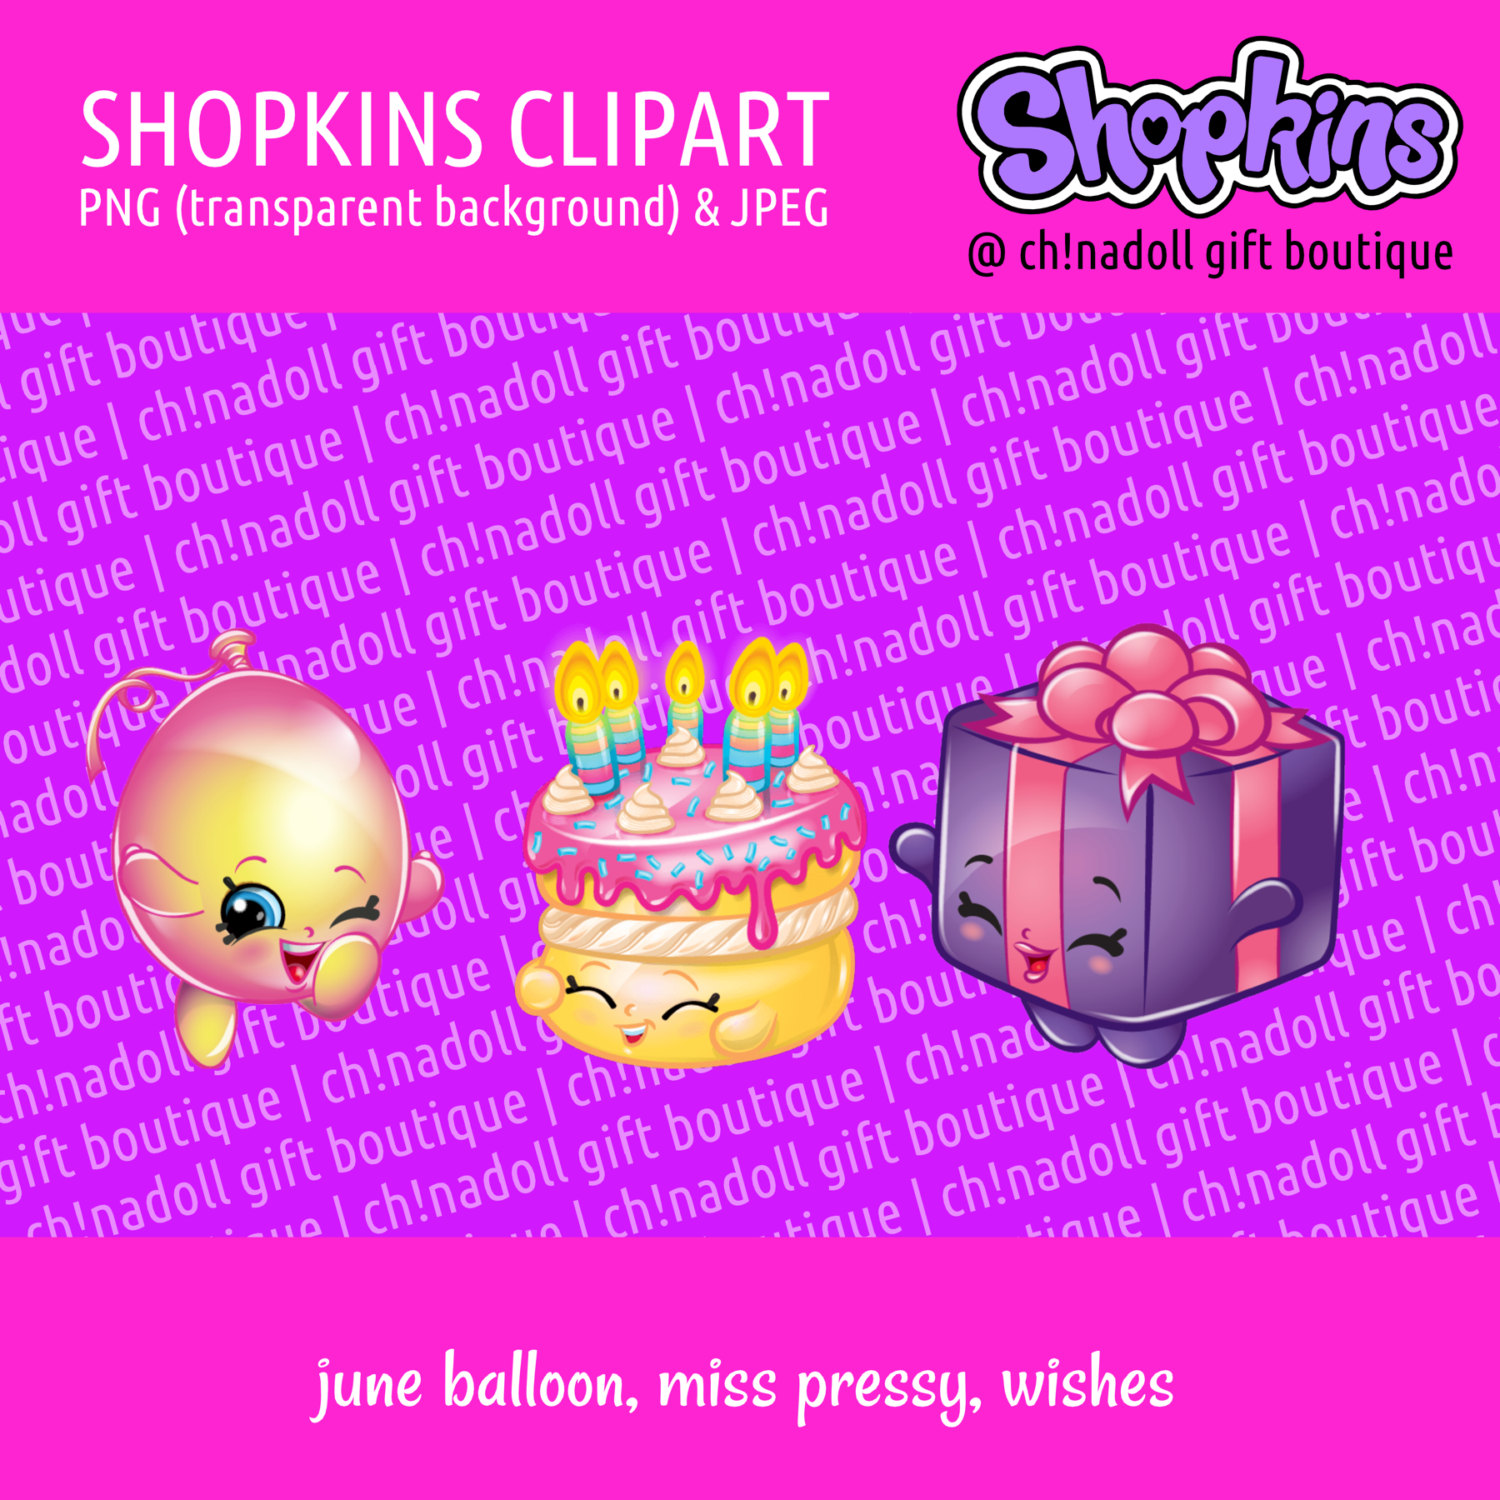 Shopkins clipart transparent background clip art library stock Shopkins clipart party wishes miss pressy june by chinadollparty clip art library stock